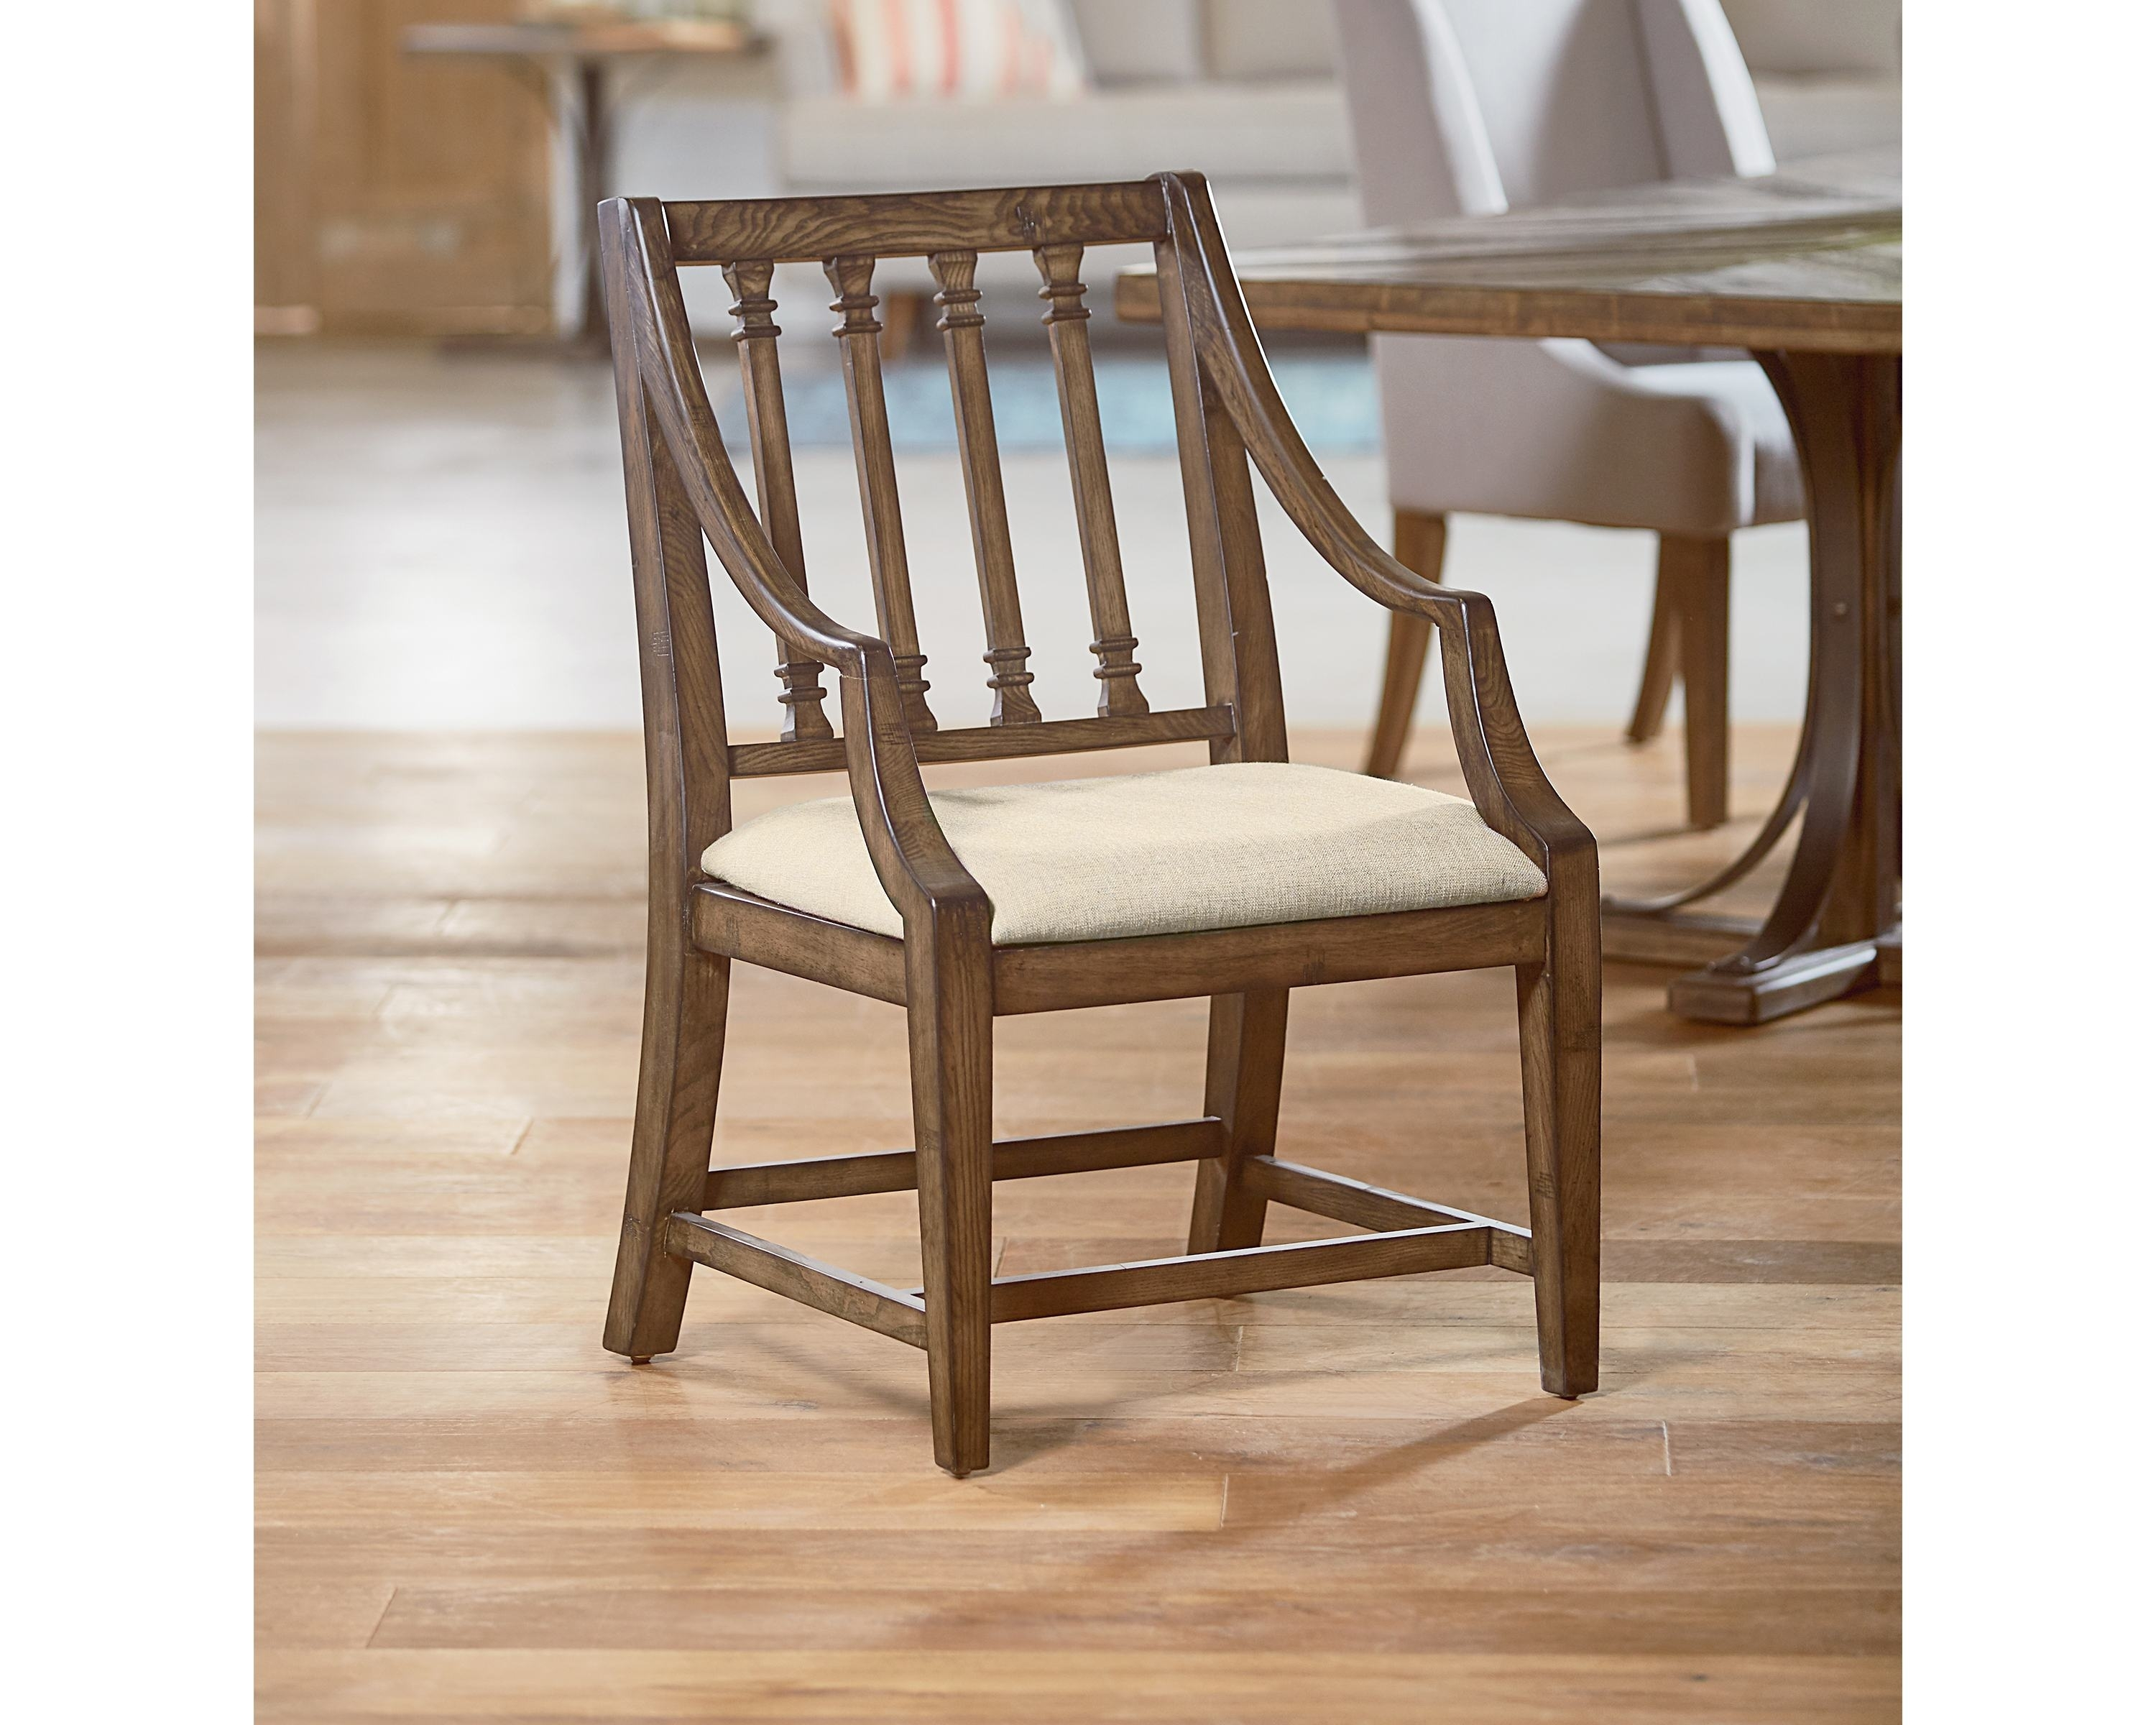 Revival Arm Chair – Magnolia Home In Trendy Magnolia Home Revival Jo's White Arm Chairs (#16 of 20)